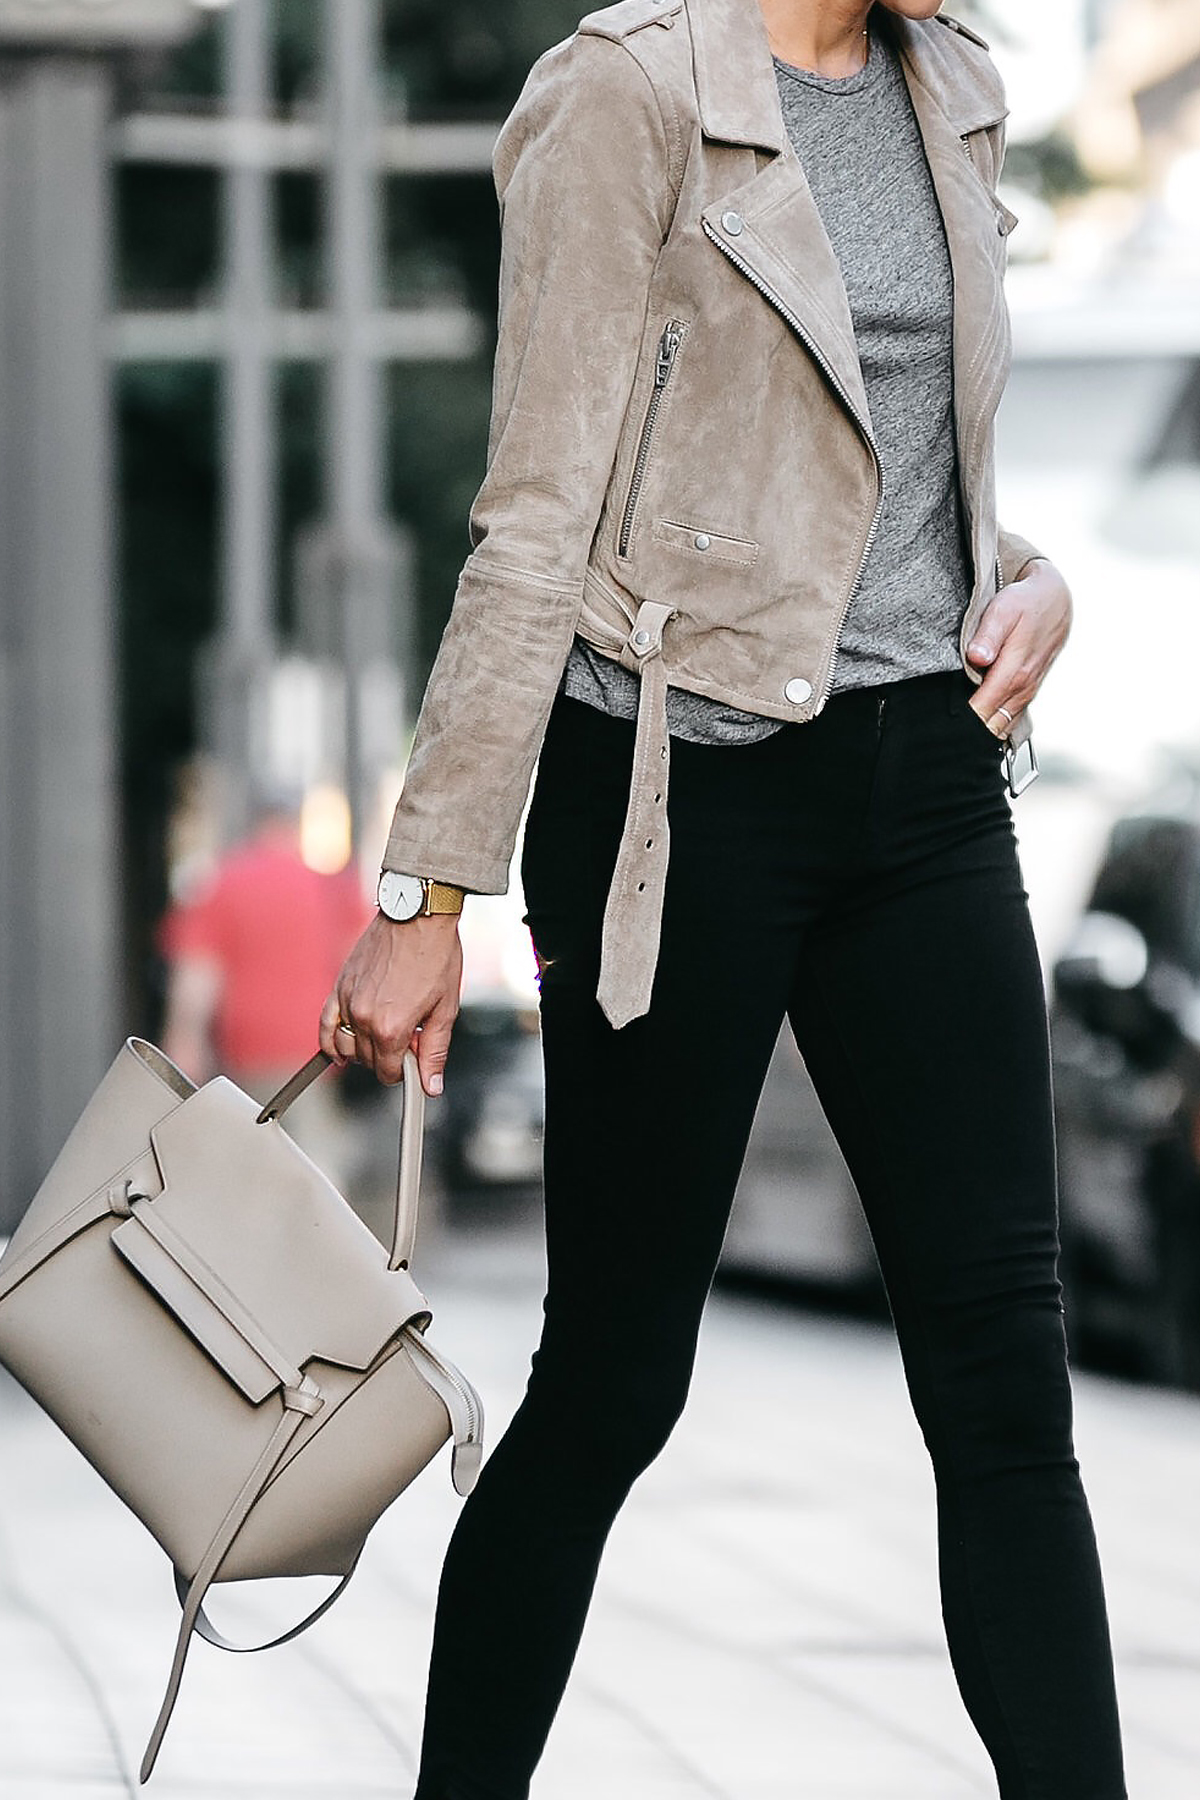 Blanknyc Tan Suede Moto Jacket Grey Tshirt Black Skinny Jeans Outfit Celine Belt Bag Fashion Jackson Dallas Blogger Fashion Blogger Street Style